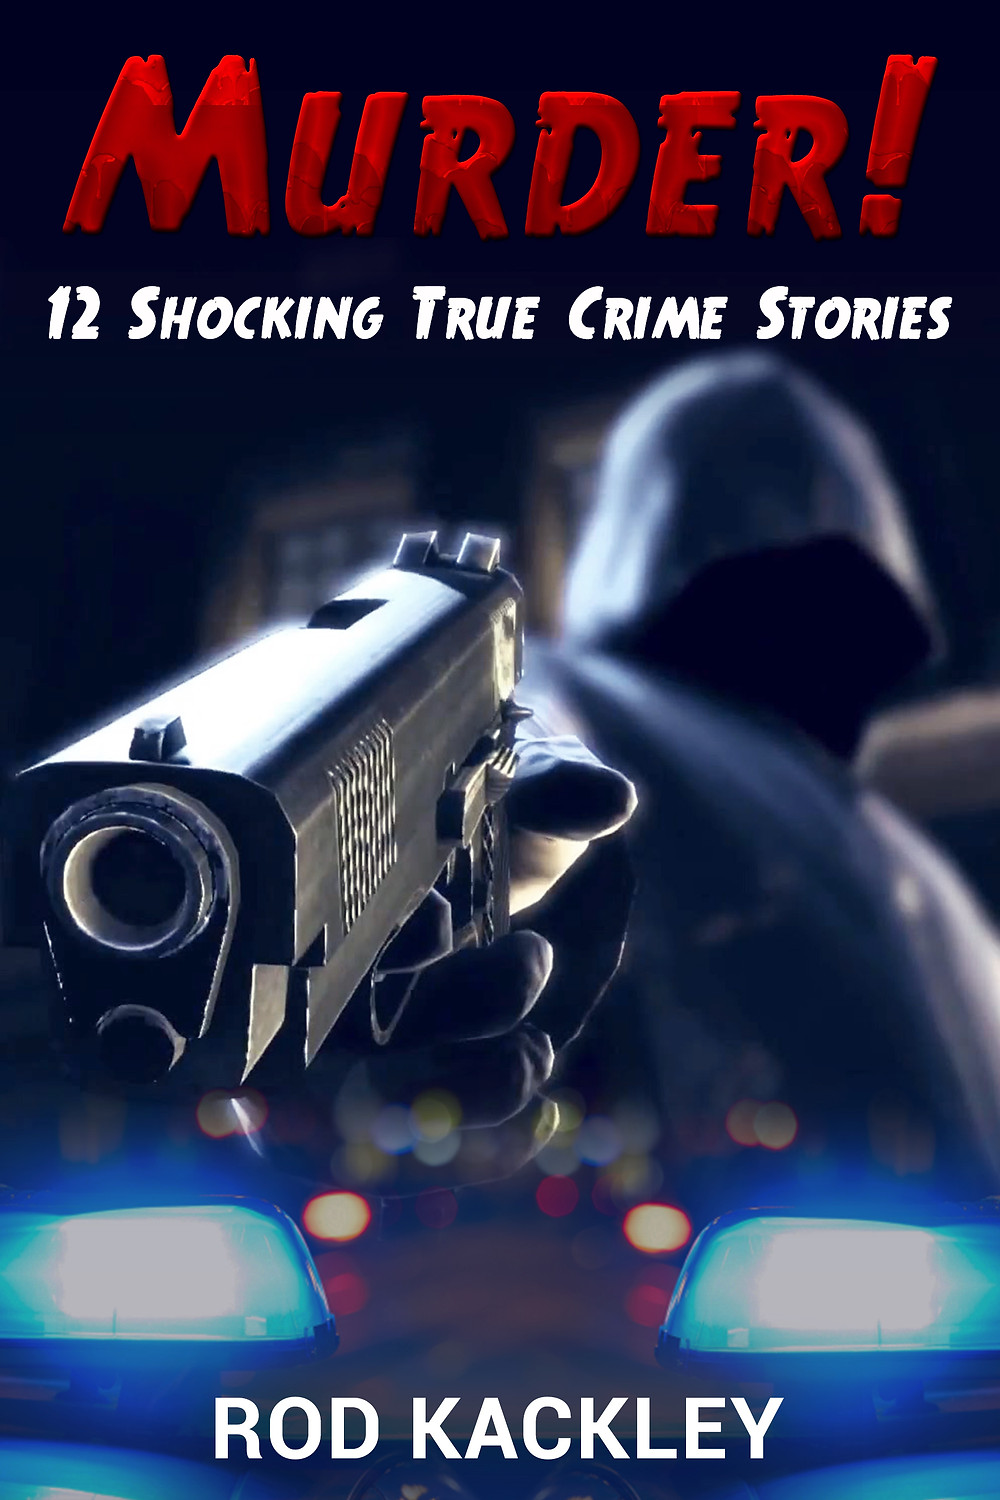 Murder! 12 Shocking True Crime Stories by Rod Kackley